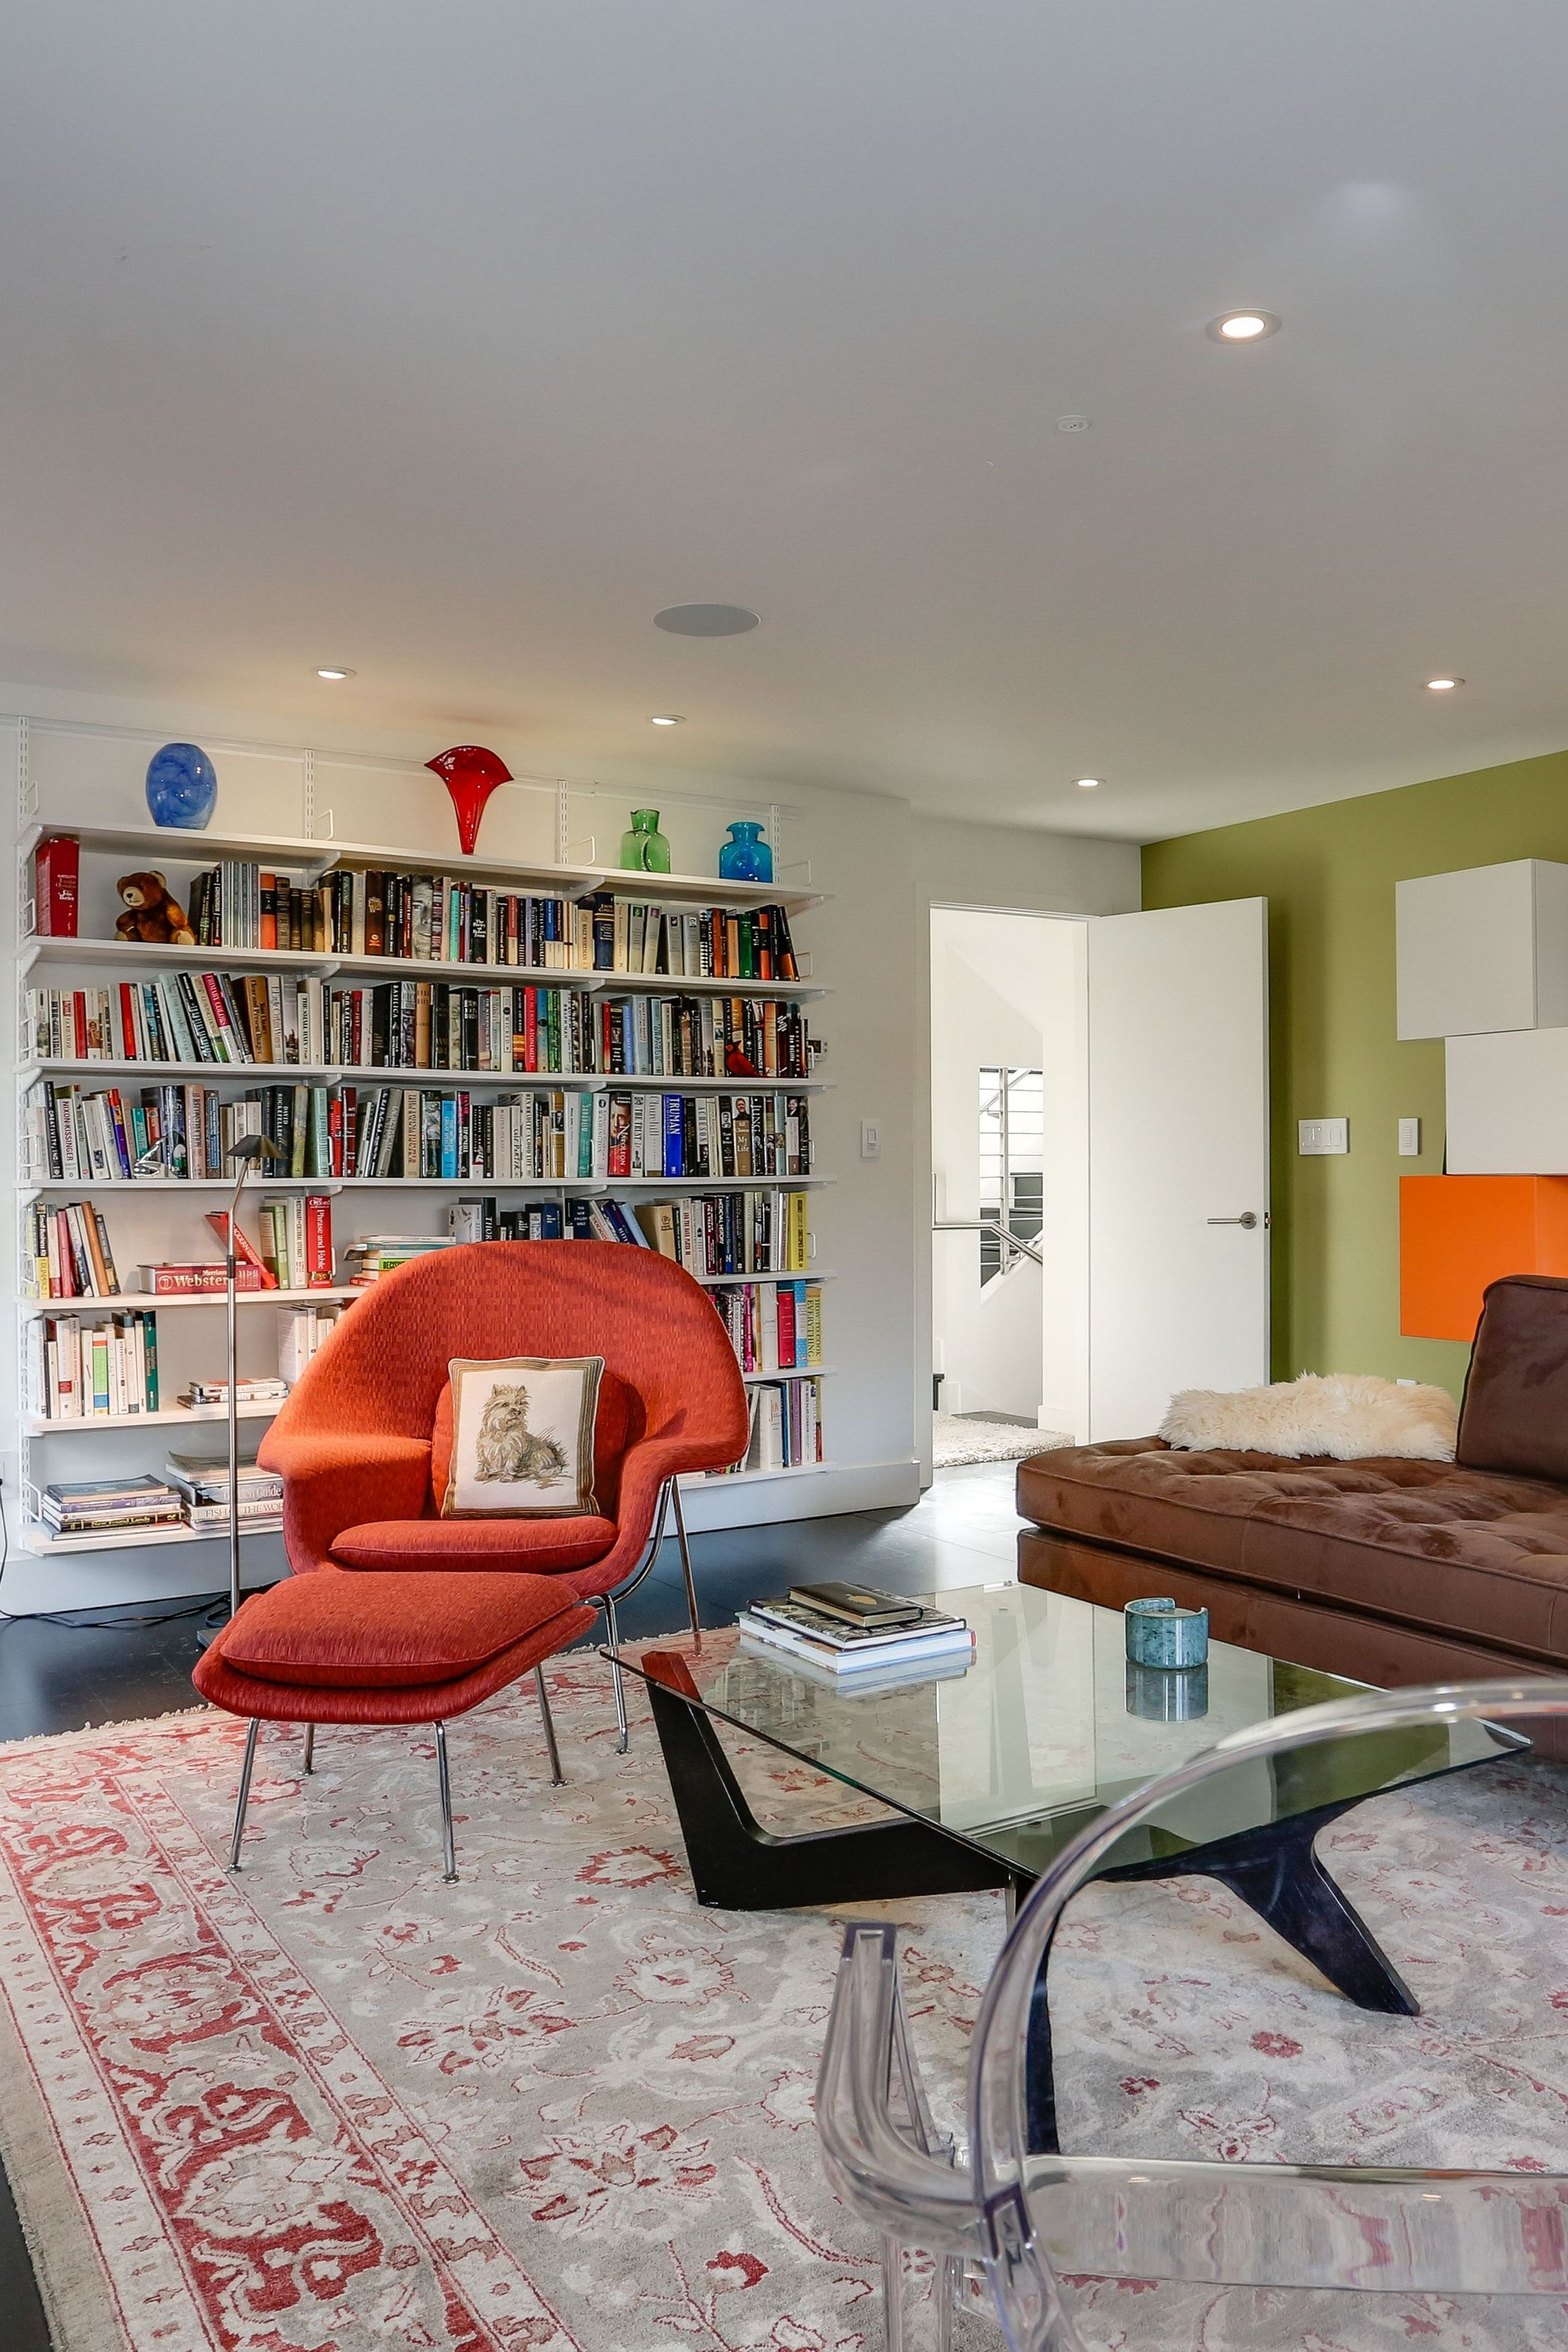 Open Study Room: A Bright & Colorful Study & Lounge Room